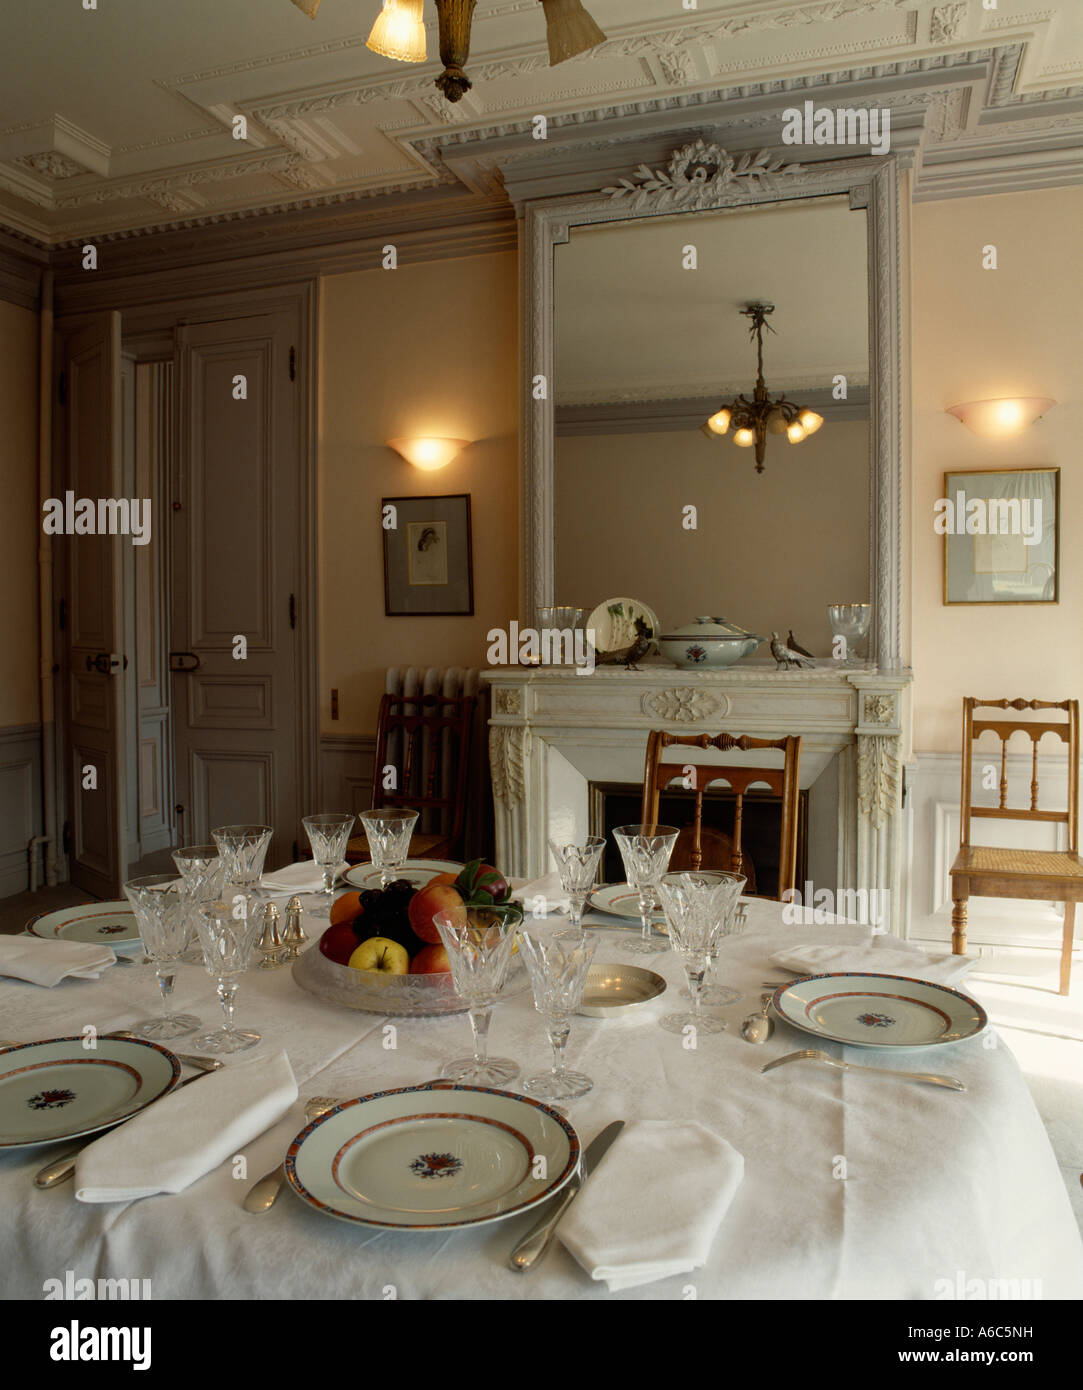 White Linen Cloth And Napkins With Place Settings On Dining Table In - Dining room table place settings